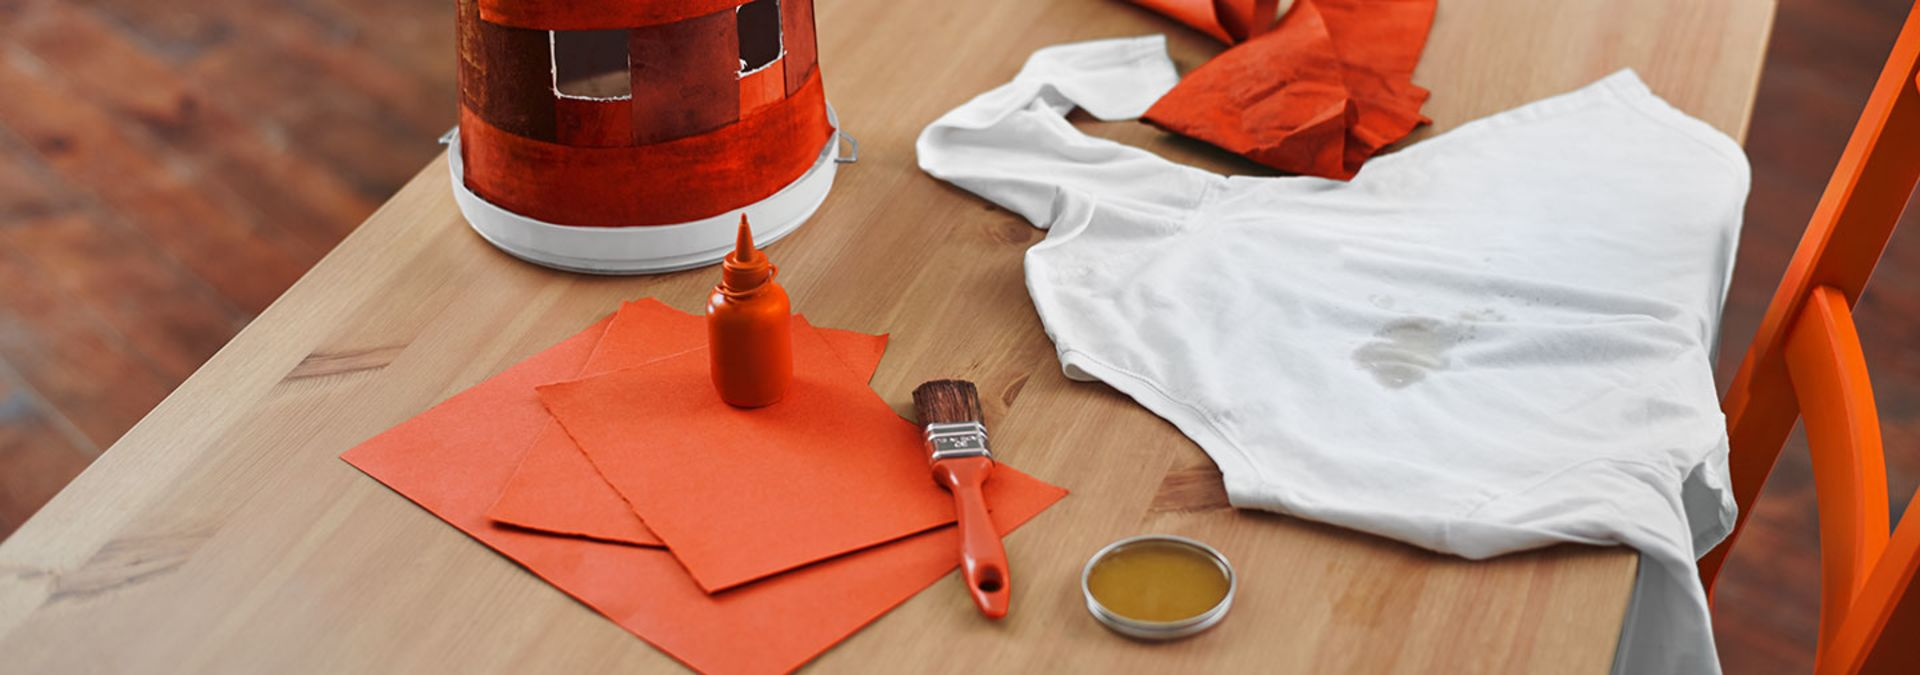 How to Remove Rubber Cement Stains